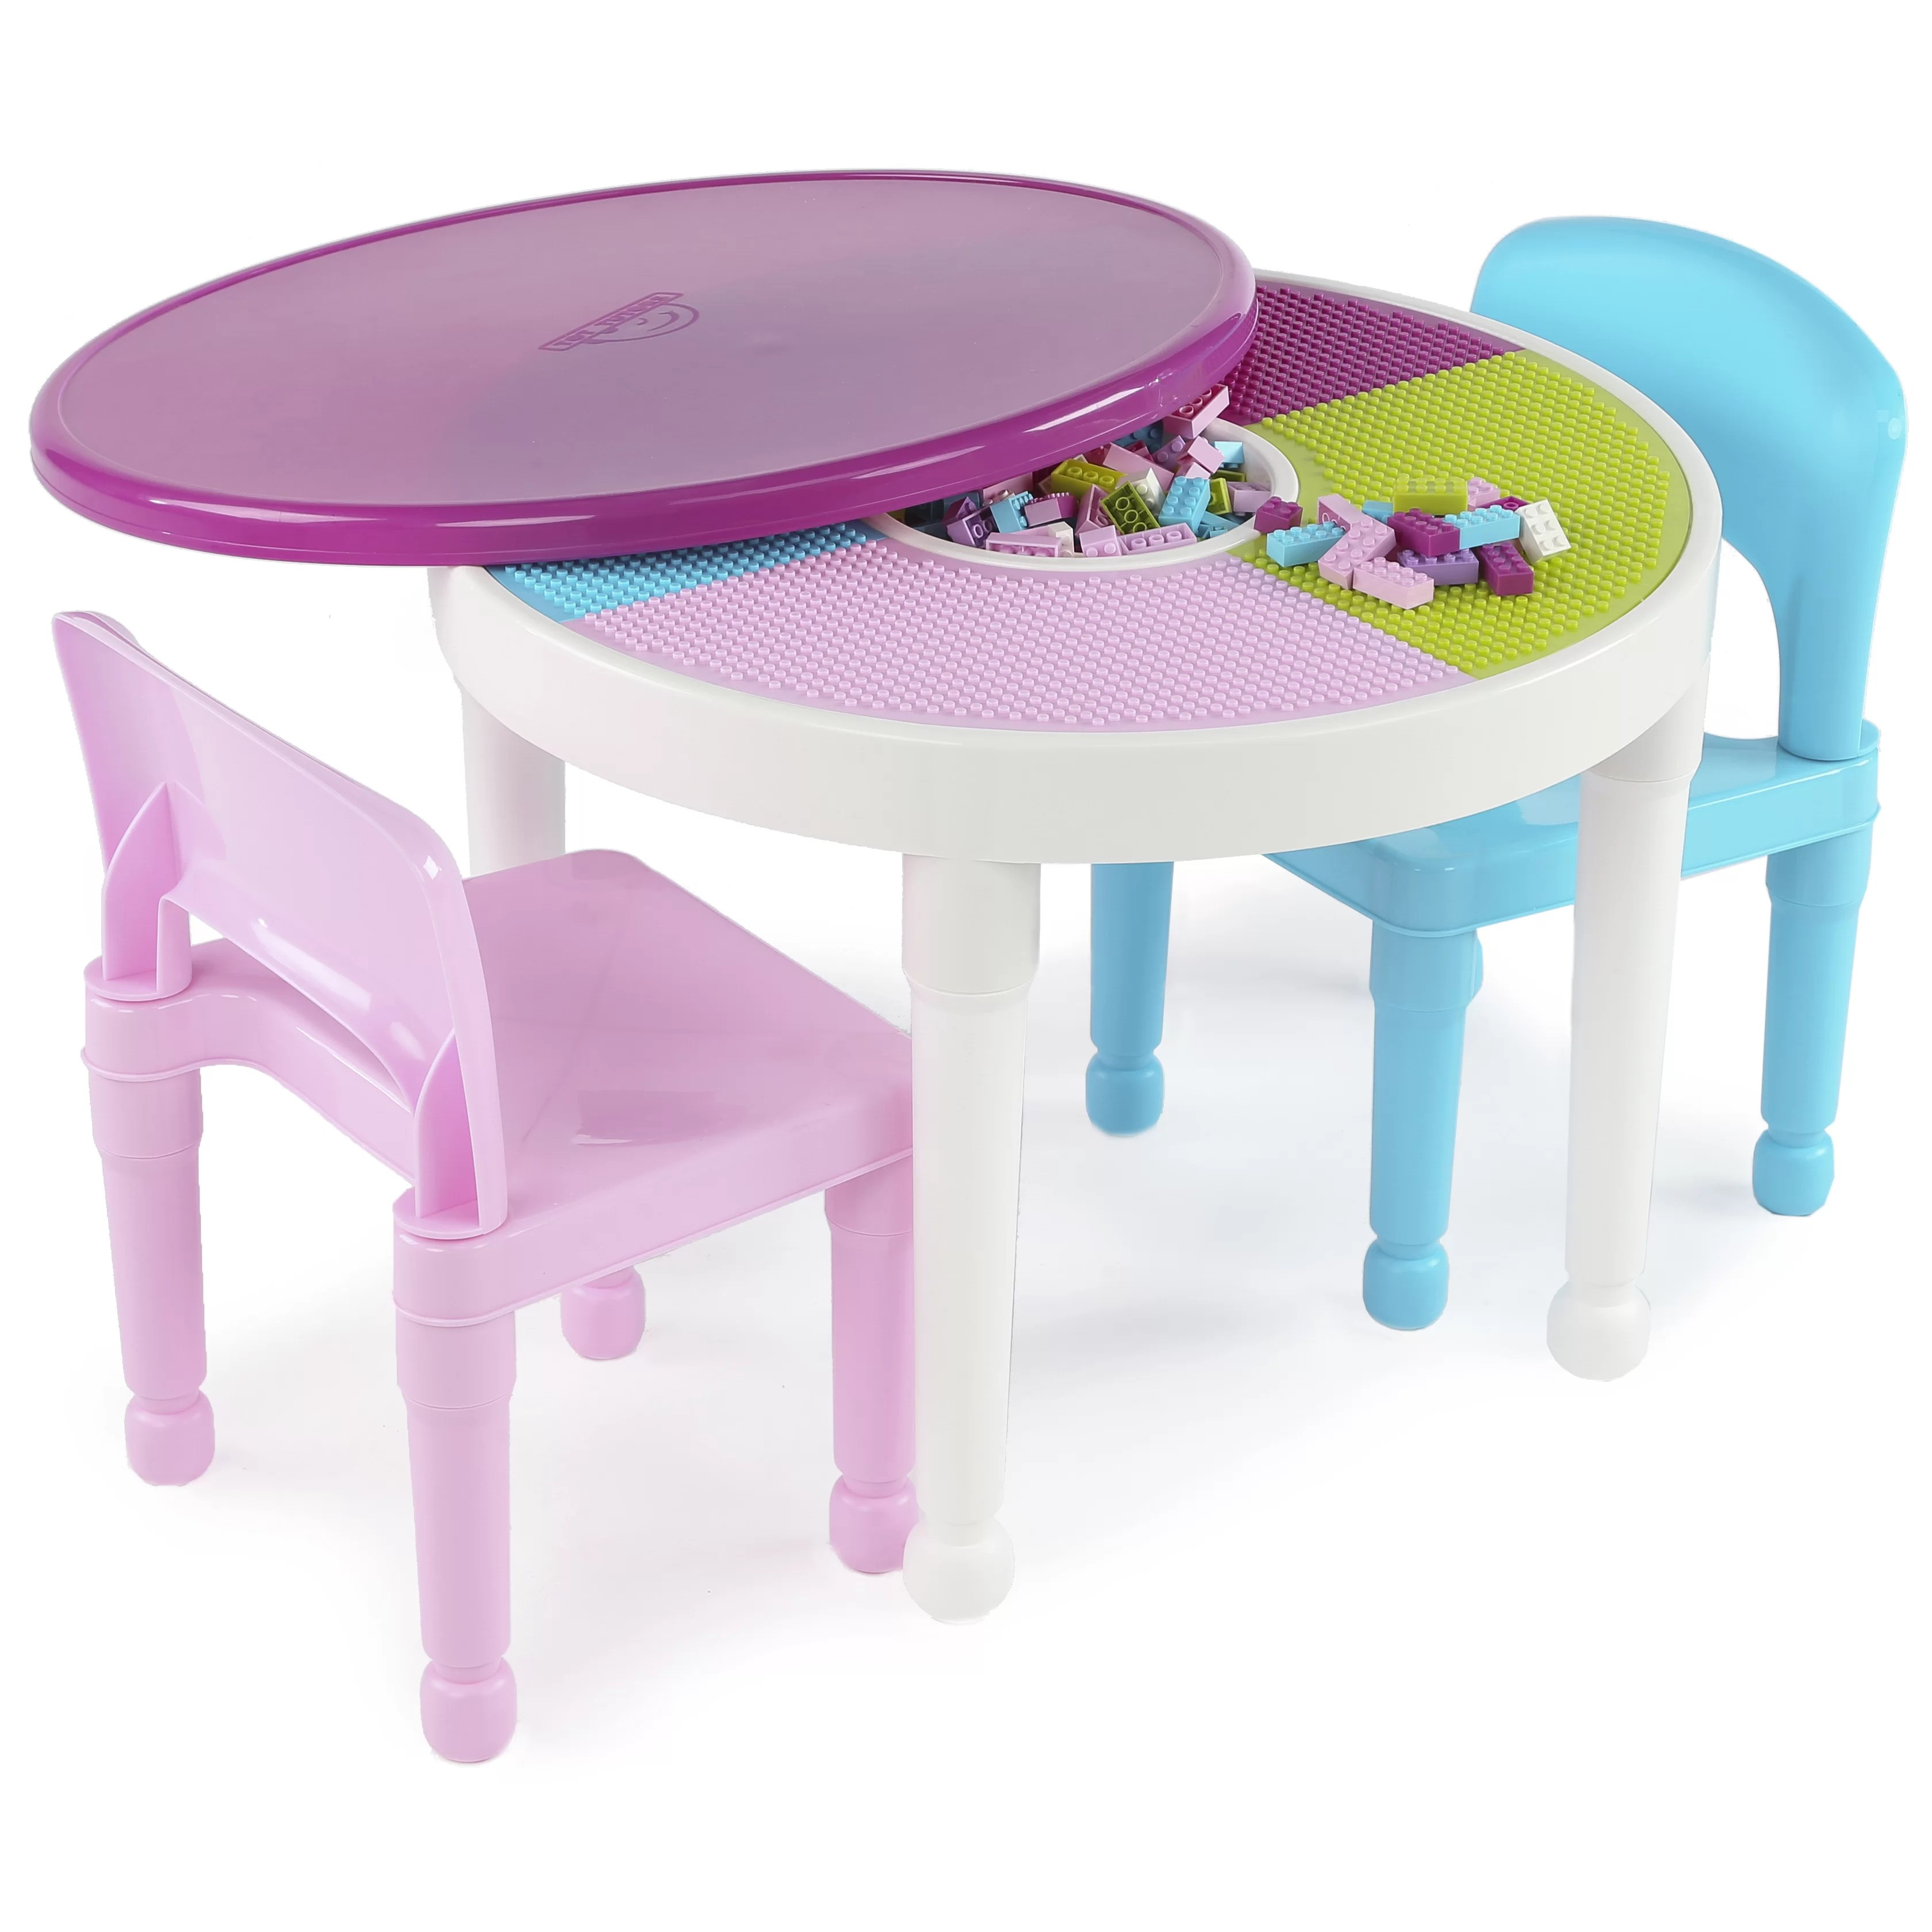 Round Table And Chair Set Tot Tutors Kids 39 3 Piece Round Table And Chair Set